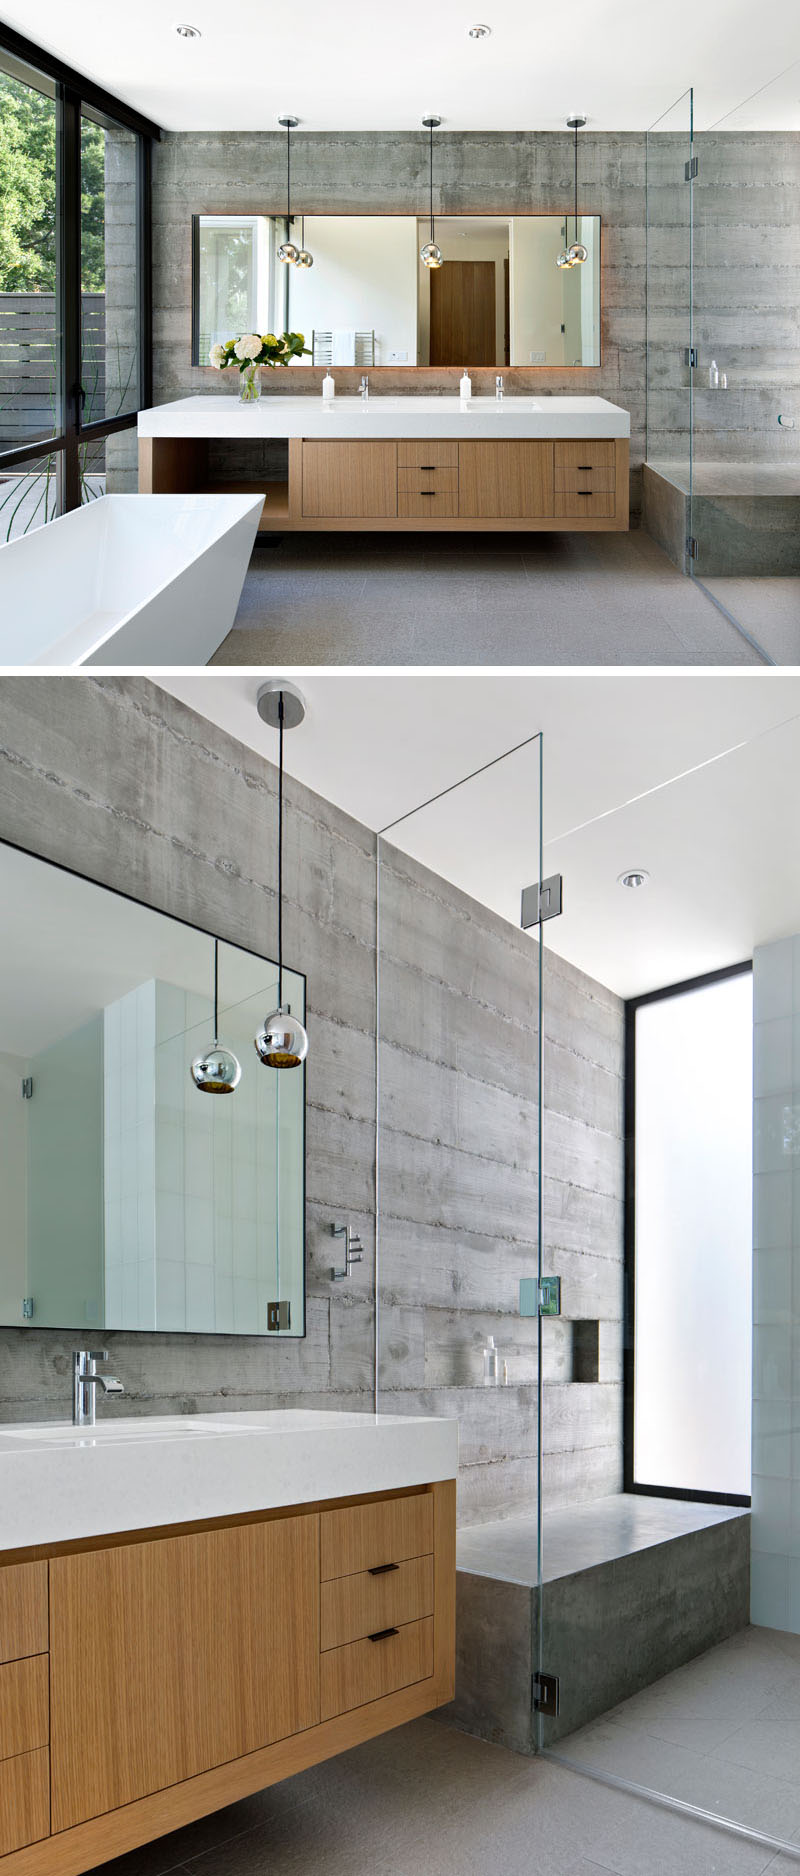 modern white stand alone tubs in the large bathroom